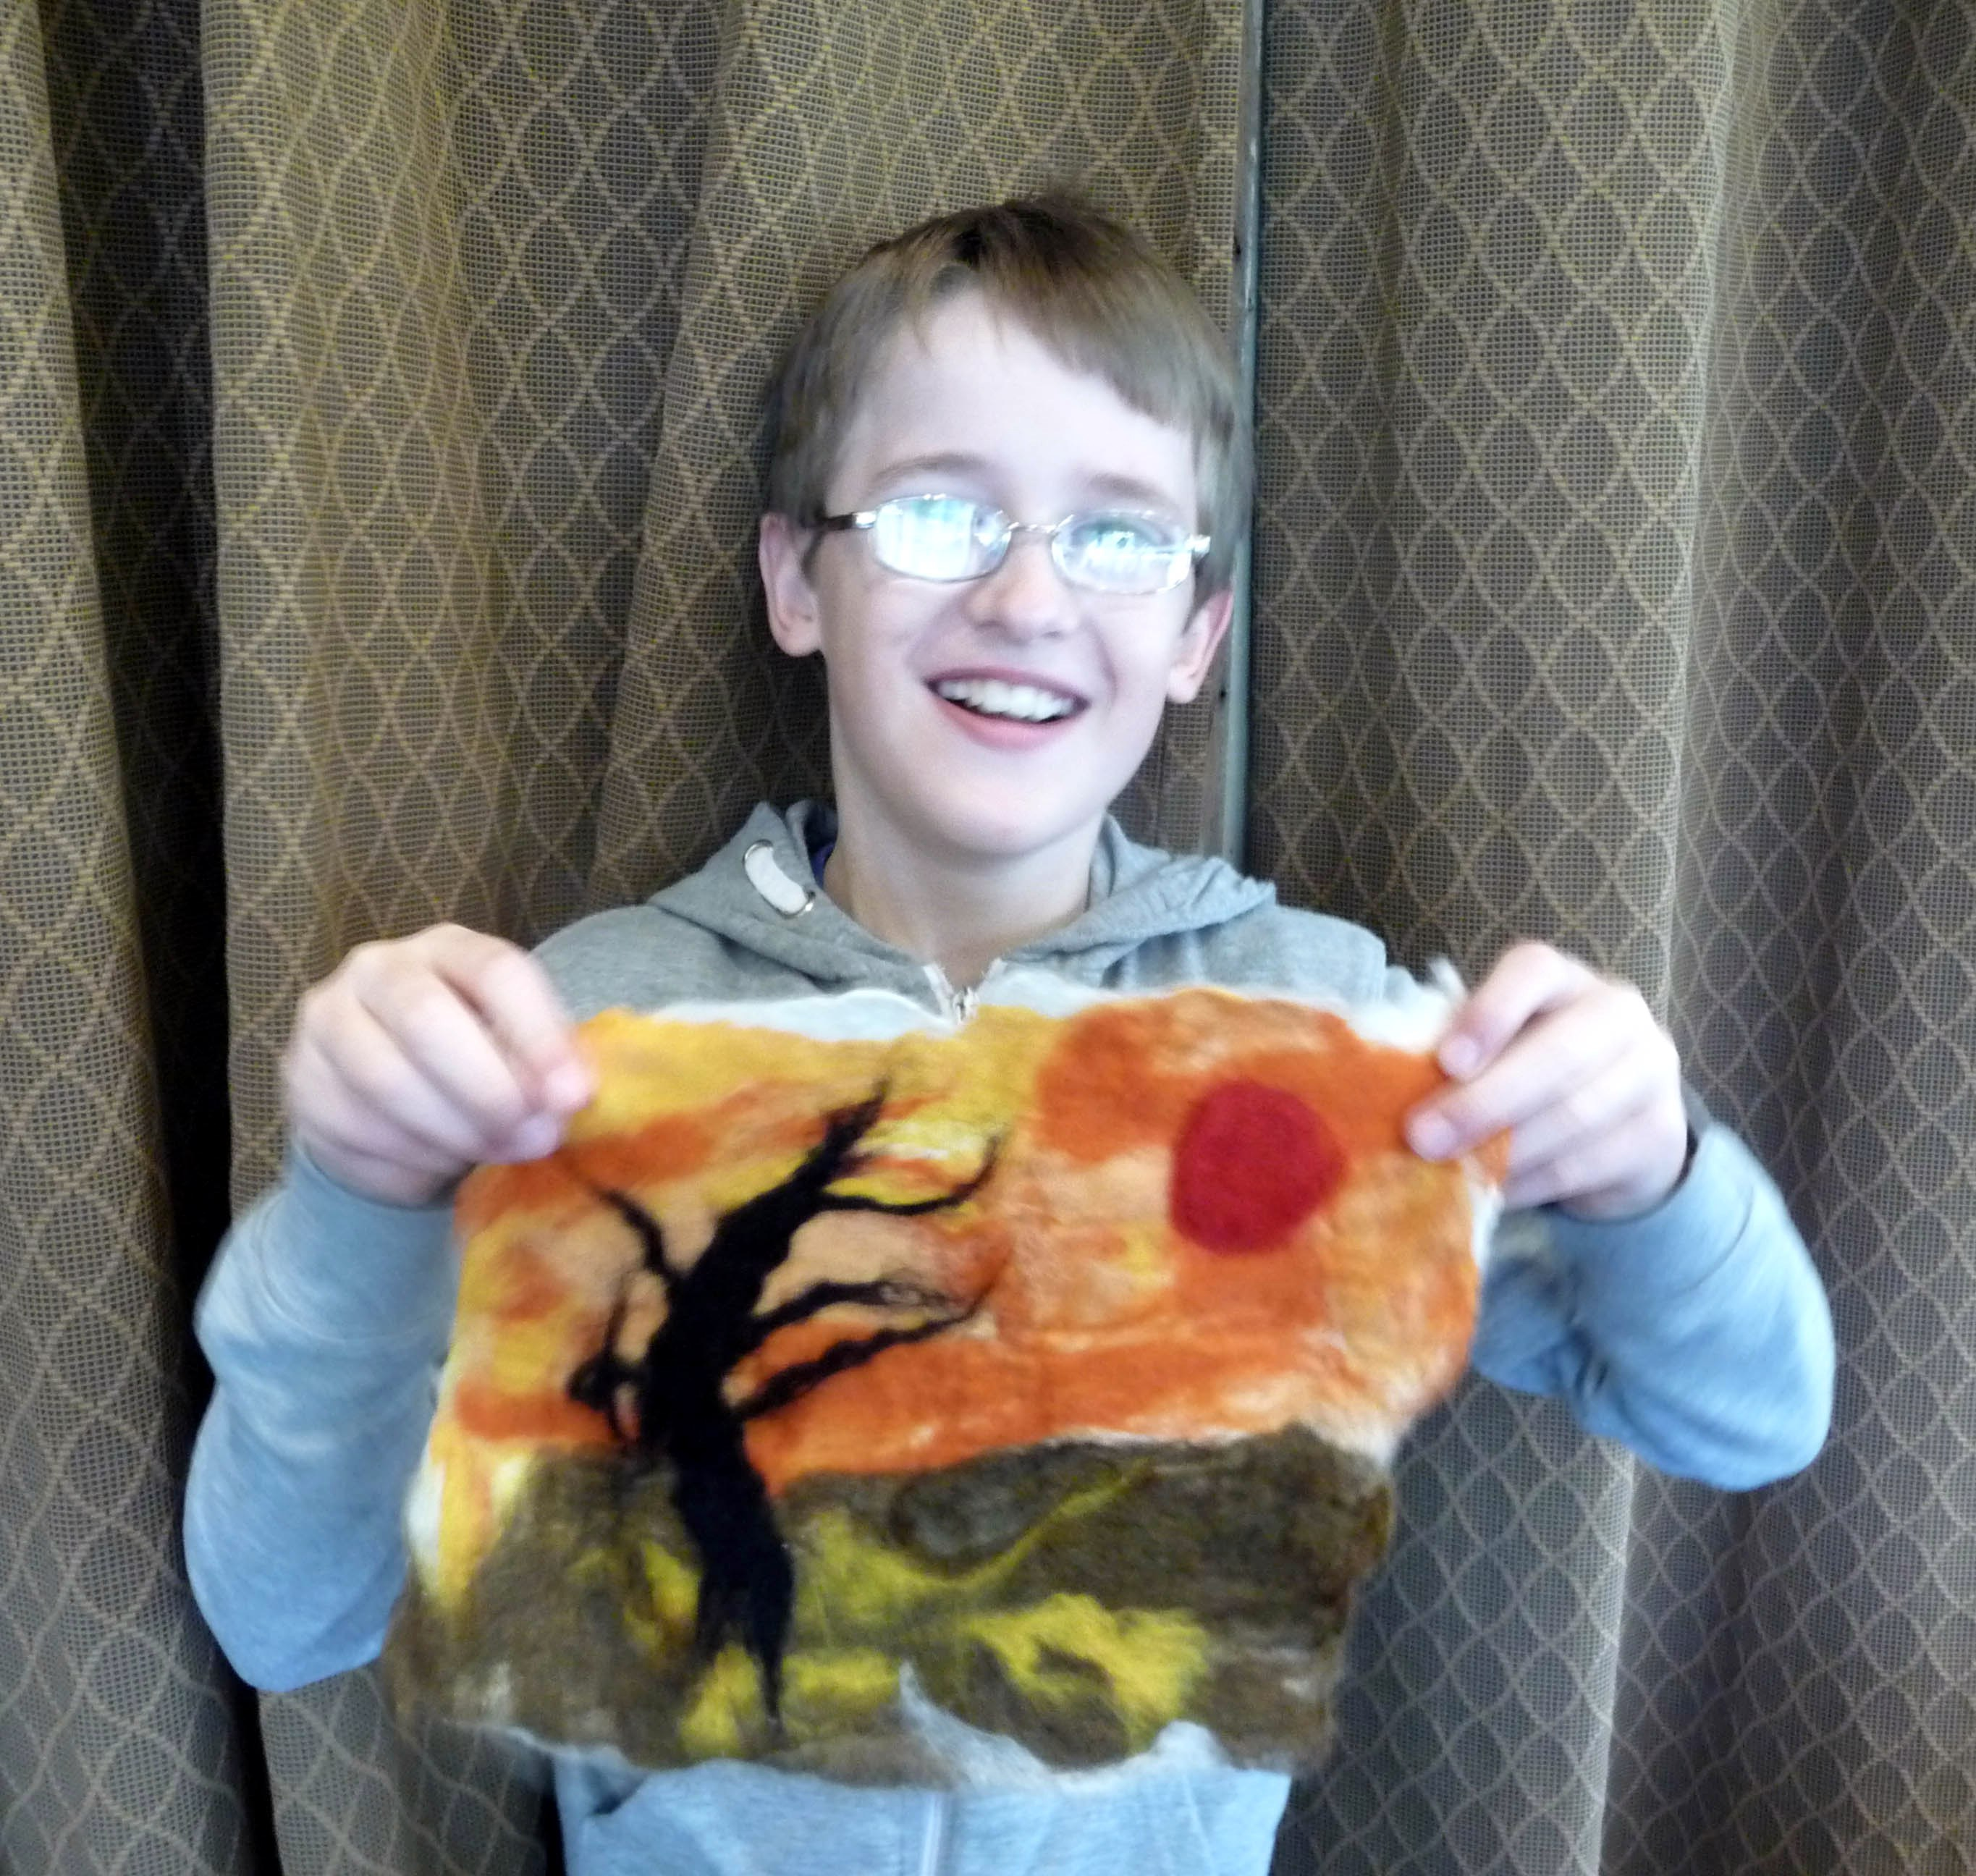 this is Fionn with his felt picture made at NW Regional Day 2014